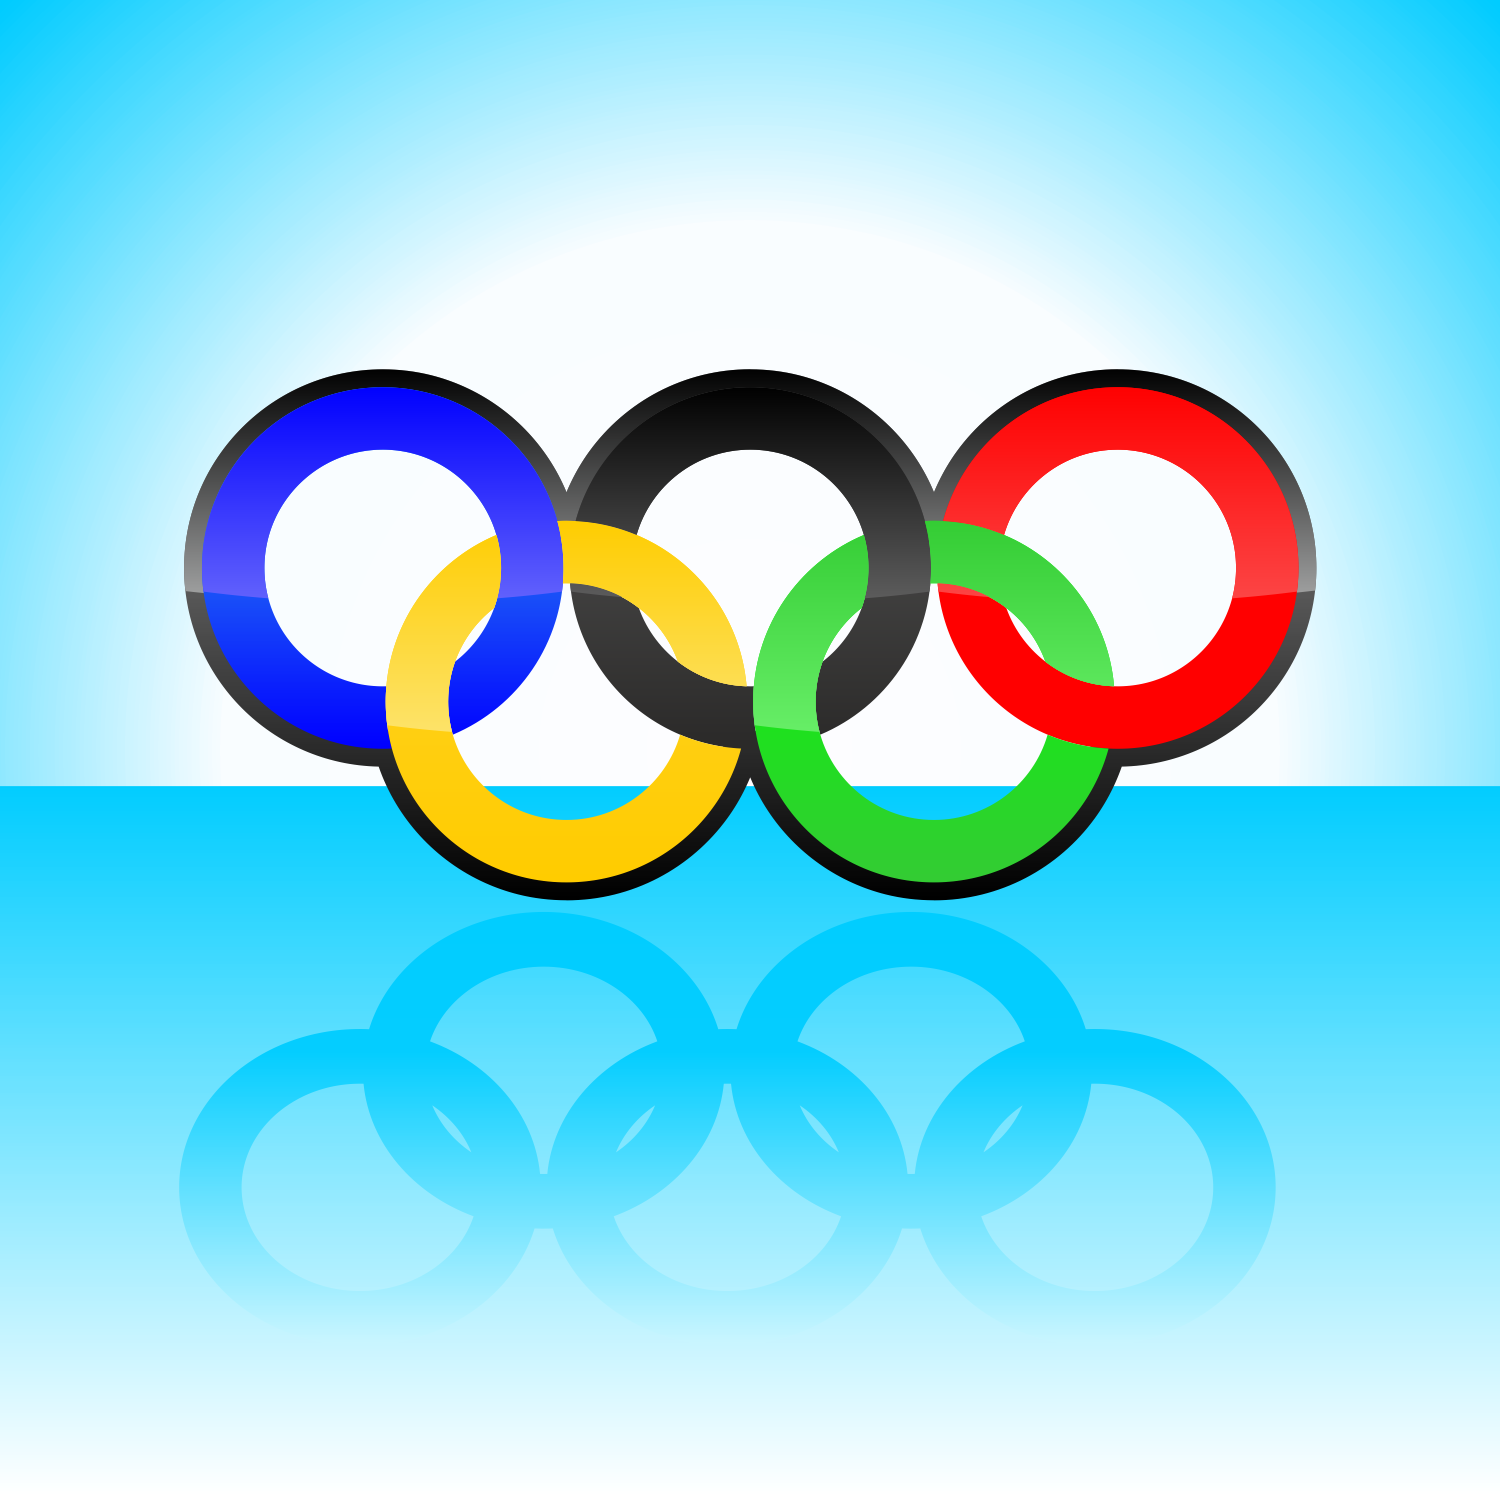 Olympic style rings. Free vector illustration